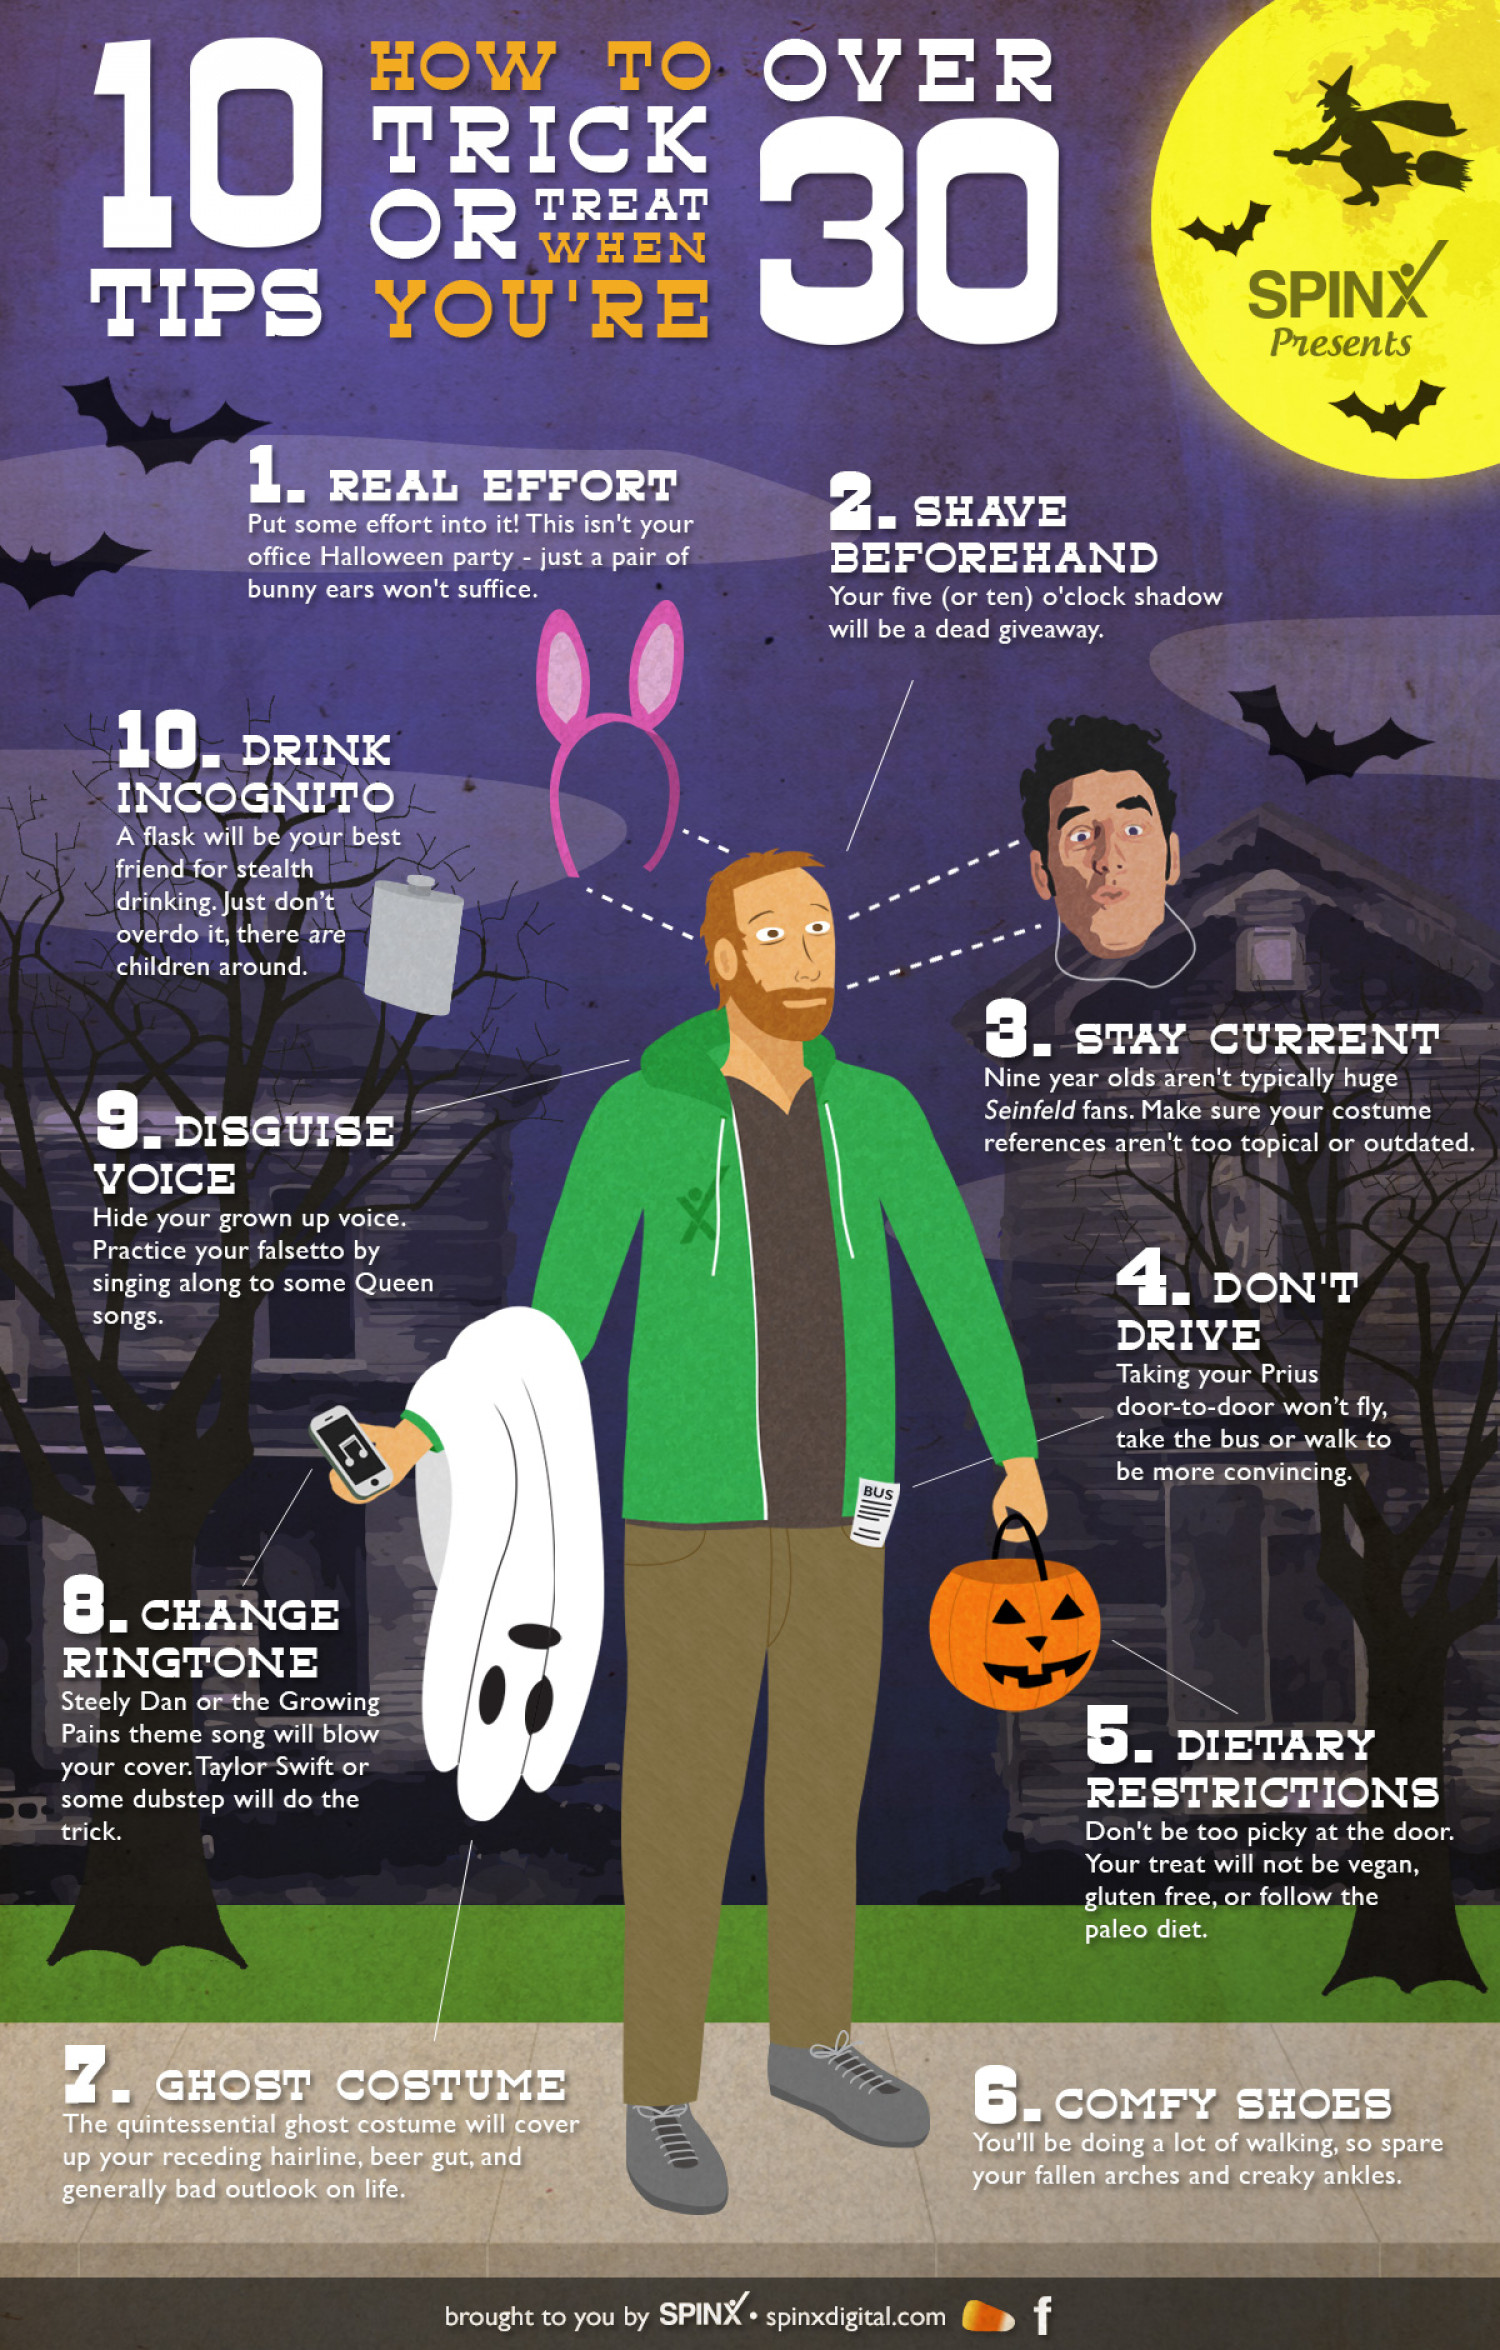 Halloween Costume Tips: How To Trick or Treat When You're Over 30 Infographic